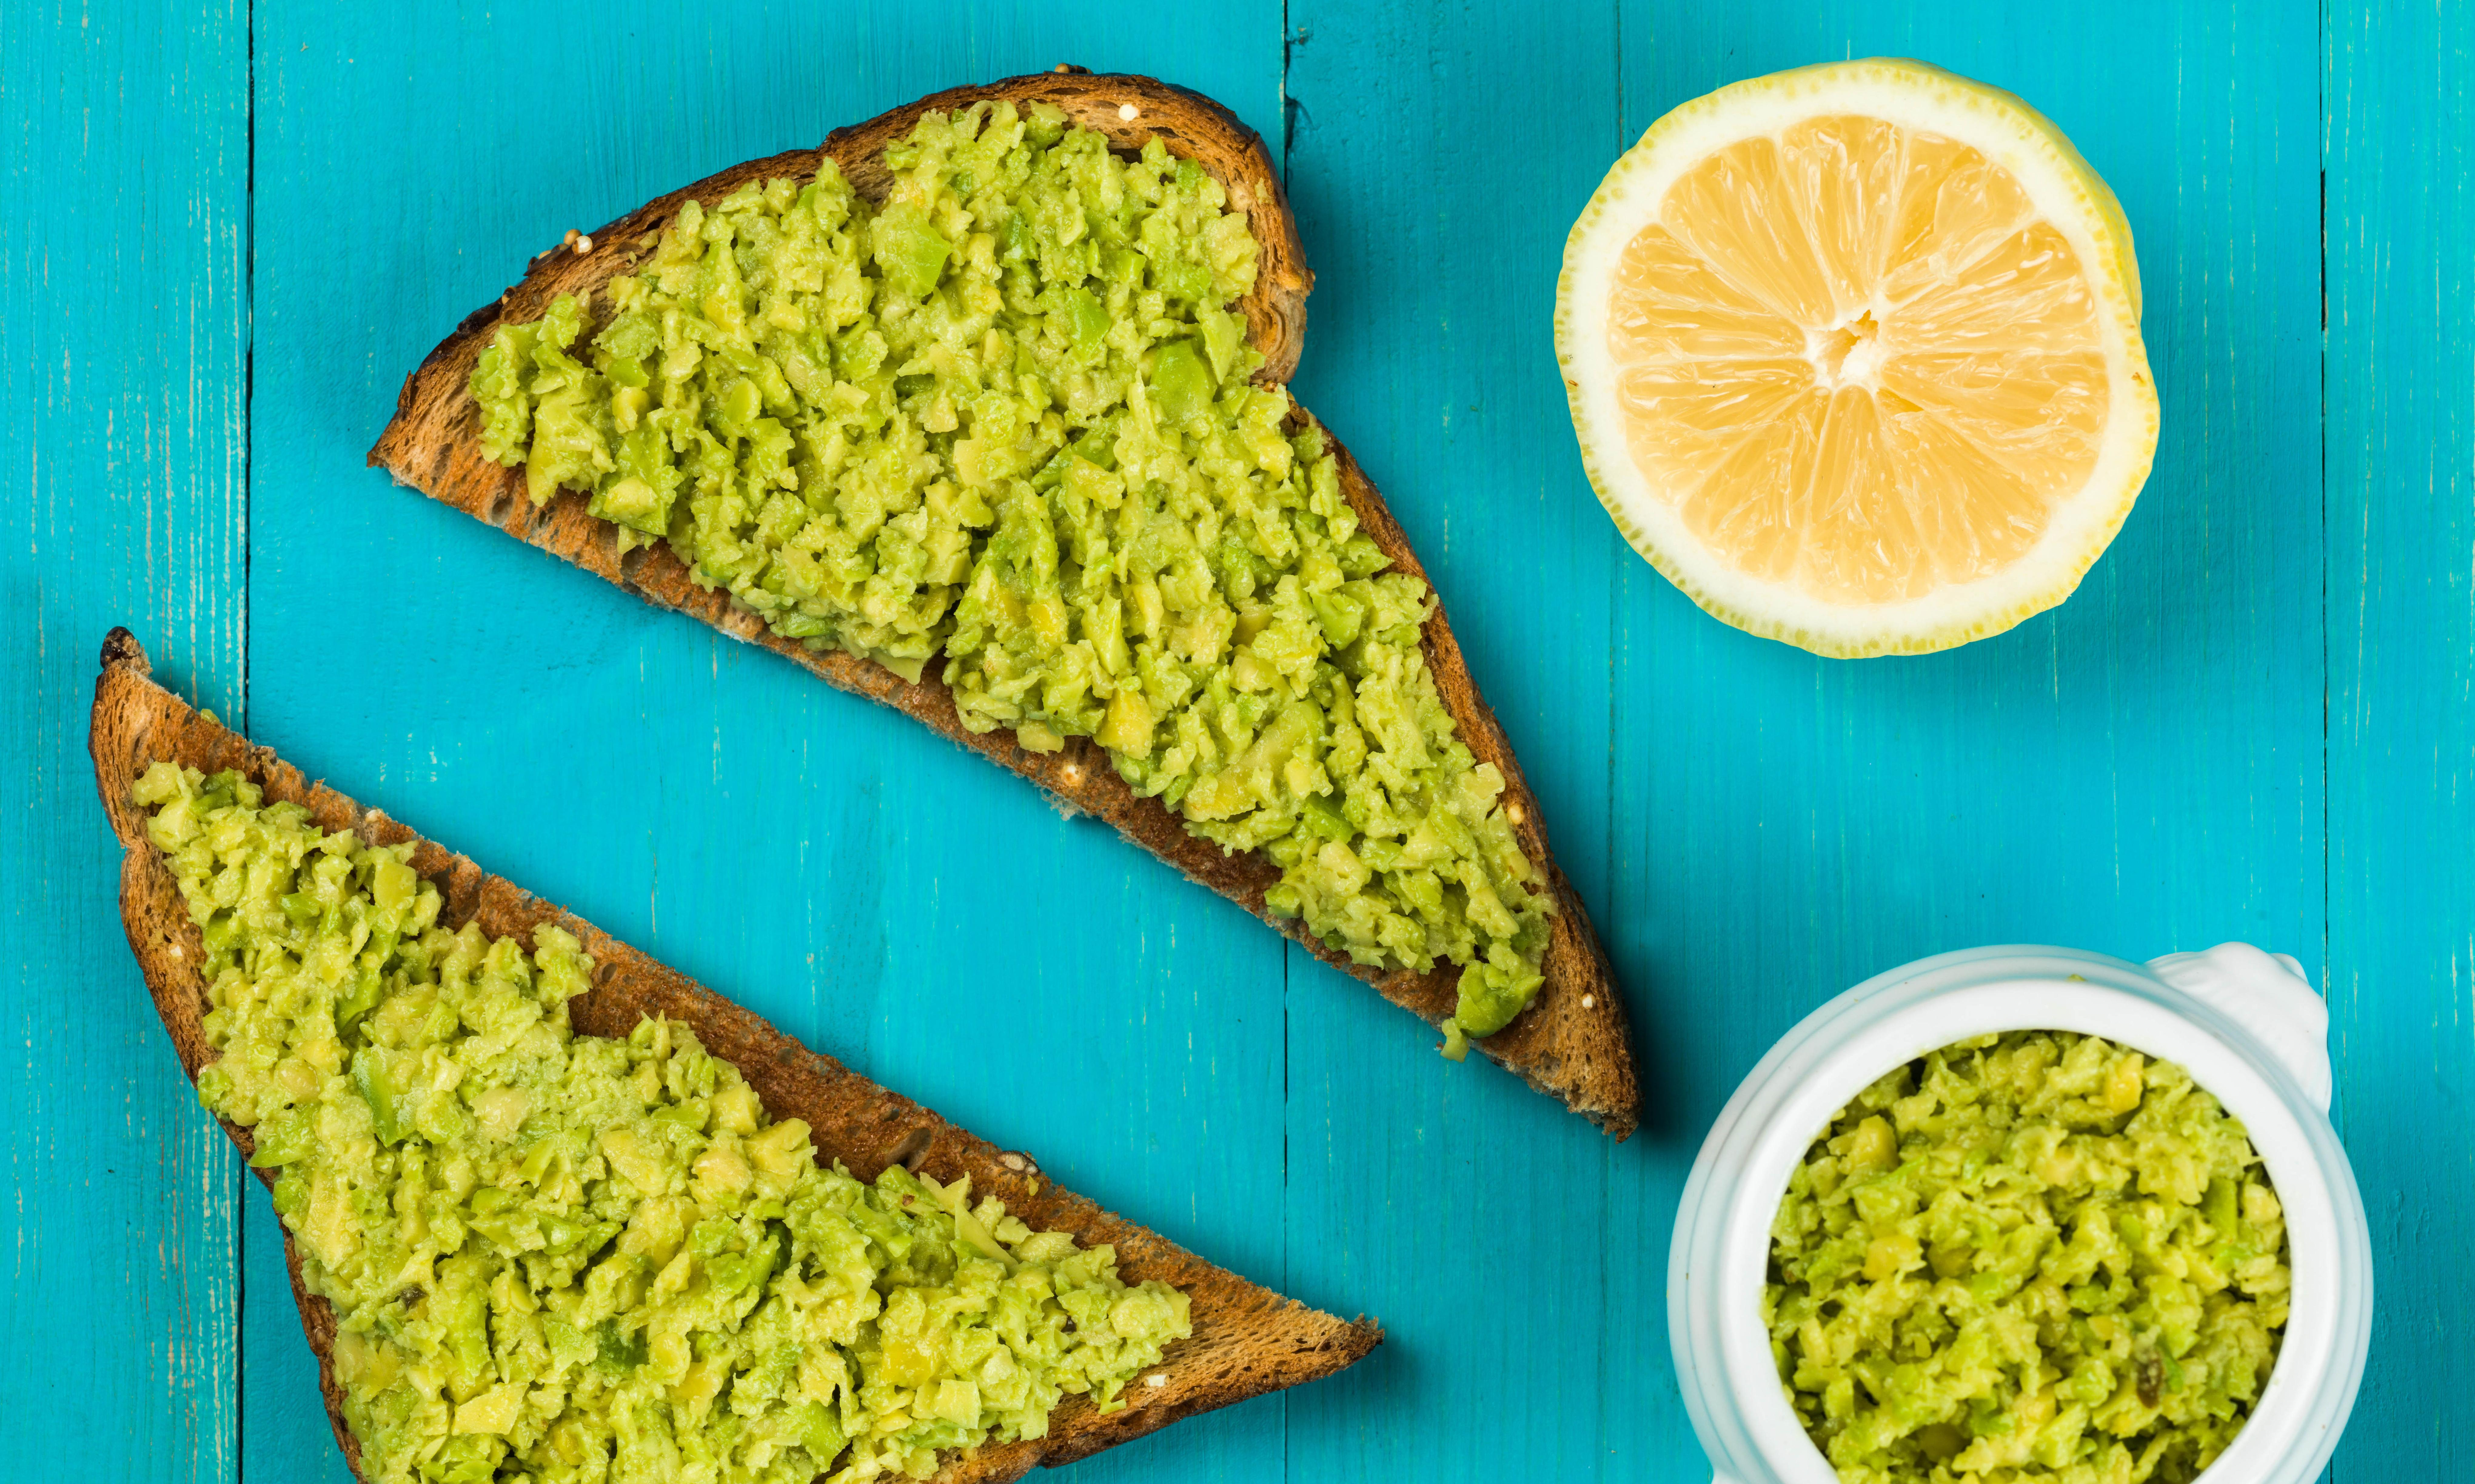 Are avocados toast? California farmers bet on what we'll be eating in 2050